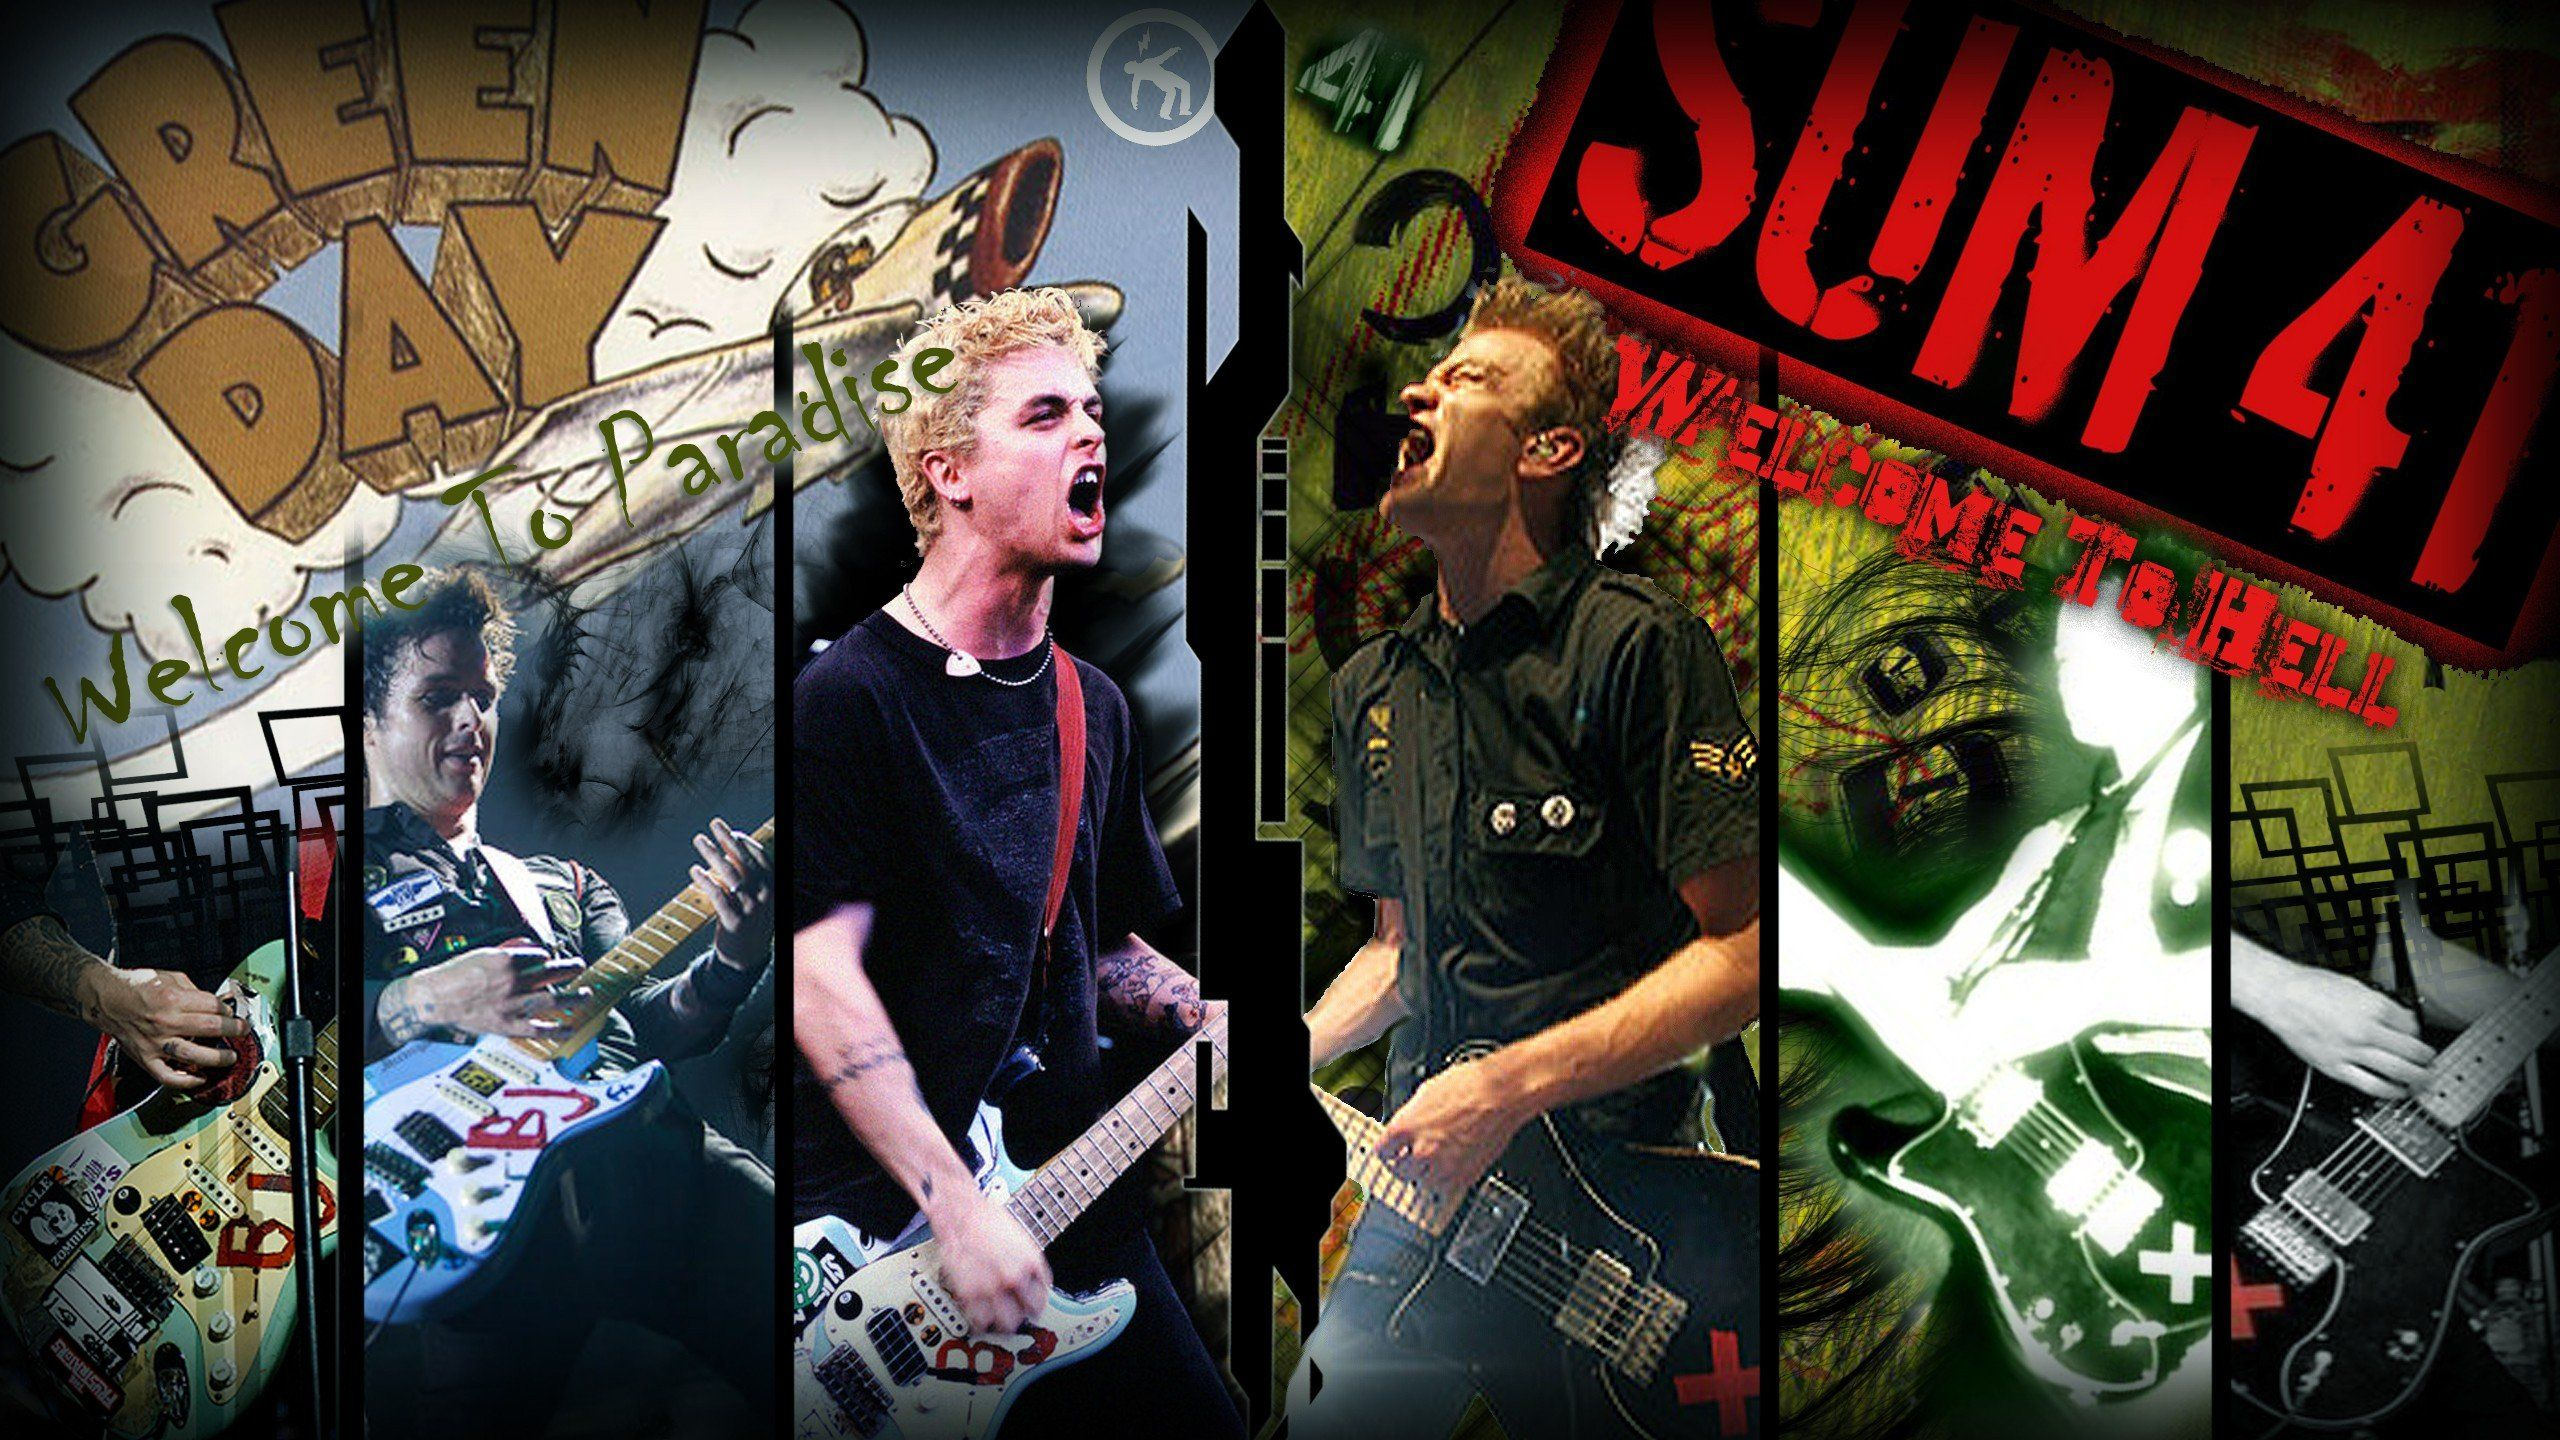 Rise Against Green Day And Sum 41 1574842 Hd Wallpaper